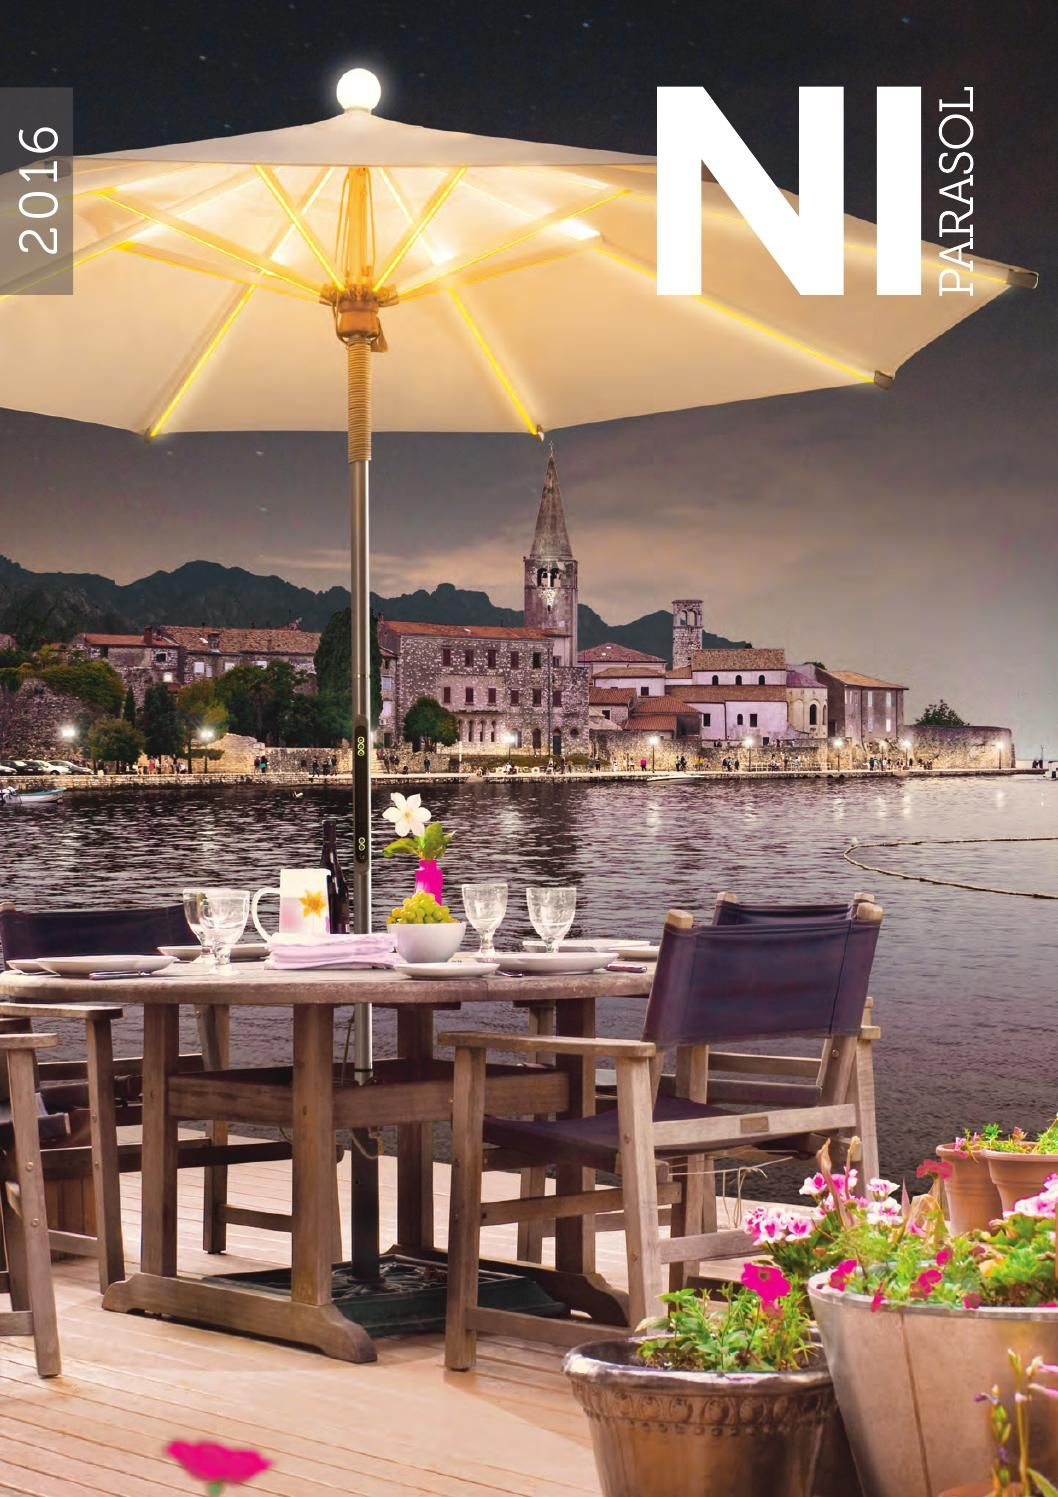 NI LED Parasol 2016 by FOXCAT Design, outdoor furniture